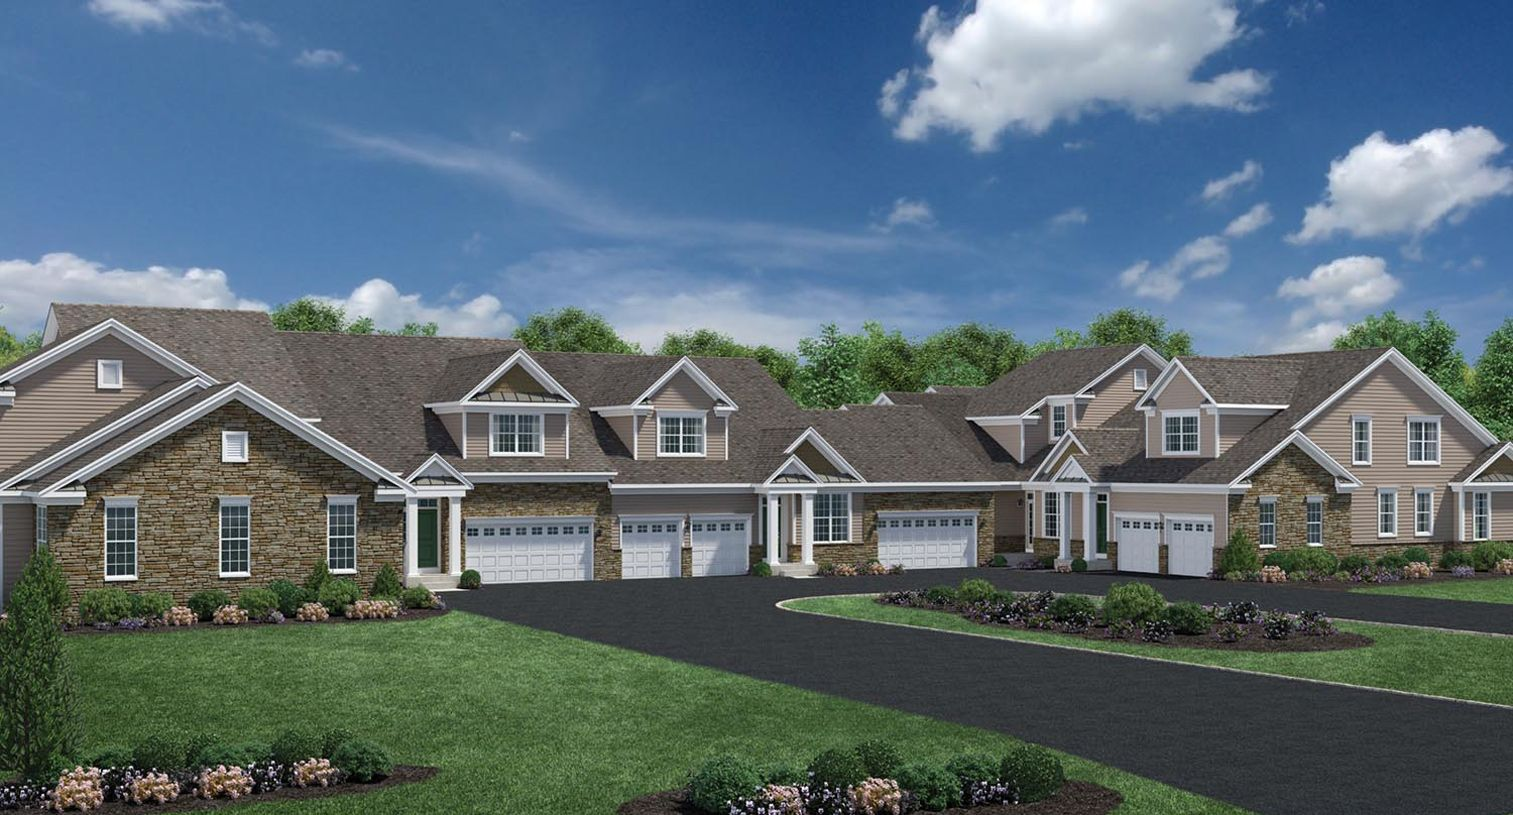 Multi Family for Active at Regency At Readington Carriages - Raritan 659 U.S. 22 Whitehouse Station, New Jersey 08889 United States